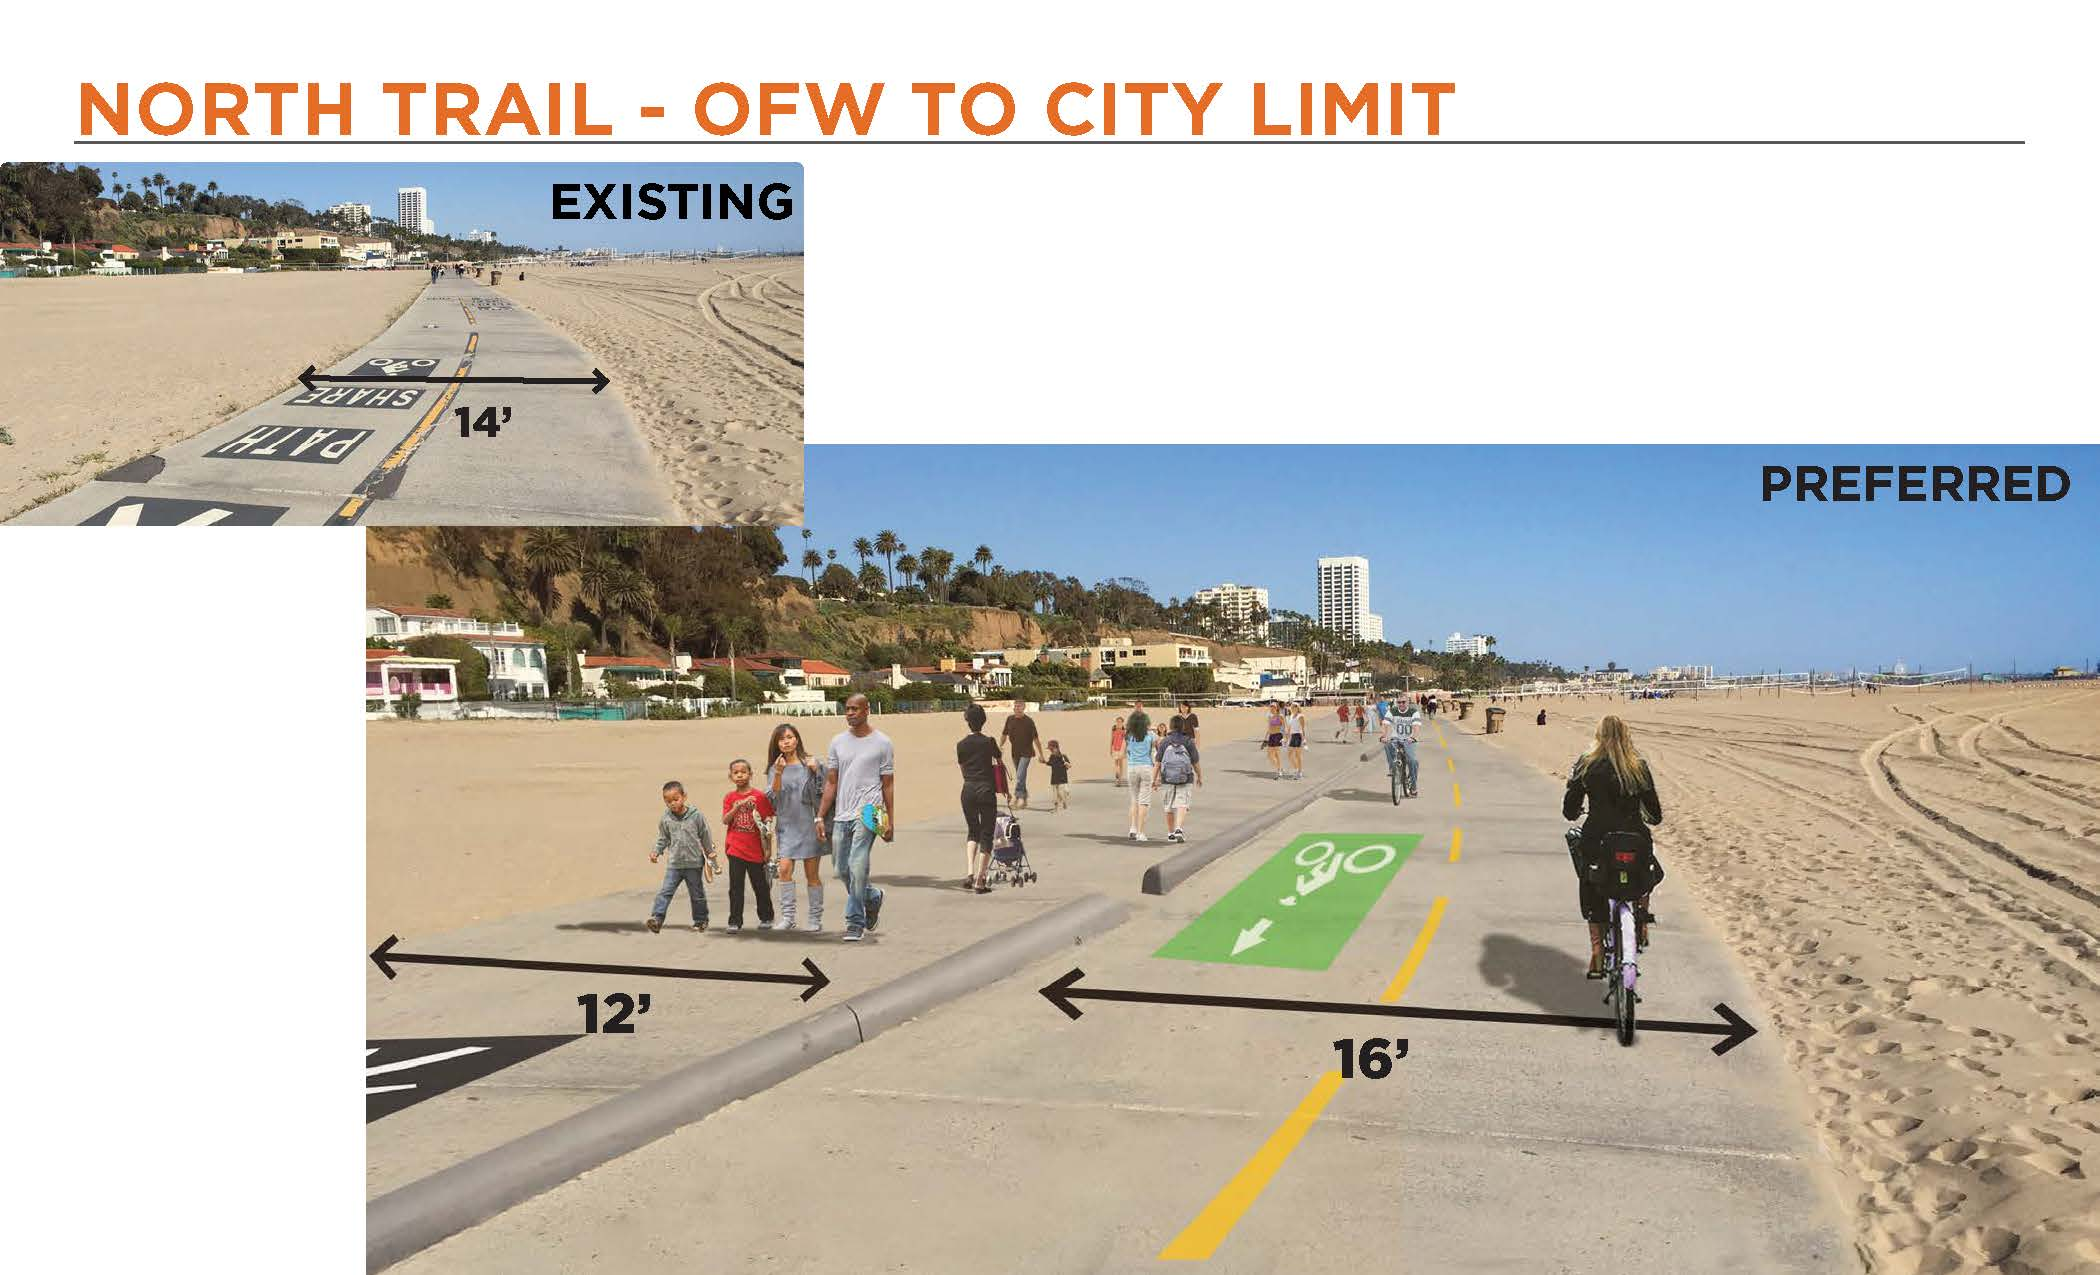 SM Beach Path Project _P+R Commission 6-15-17 (002)_Page_27.jpg